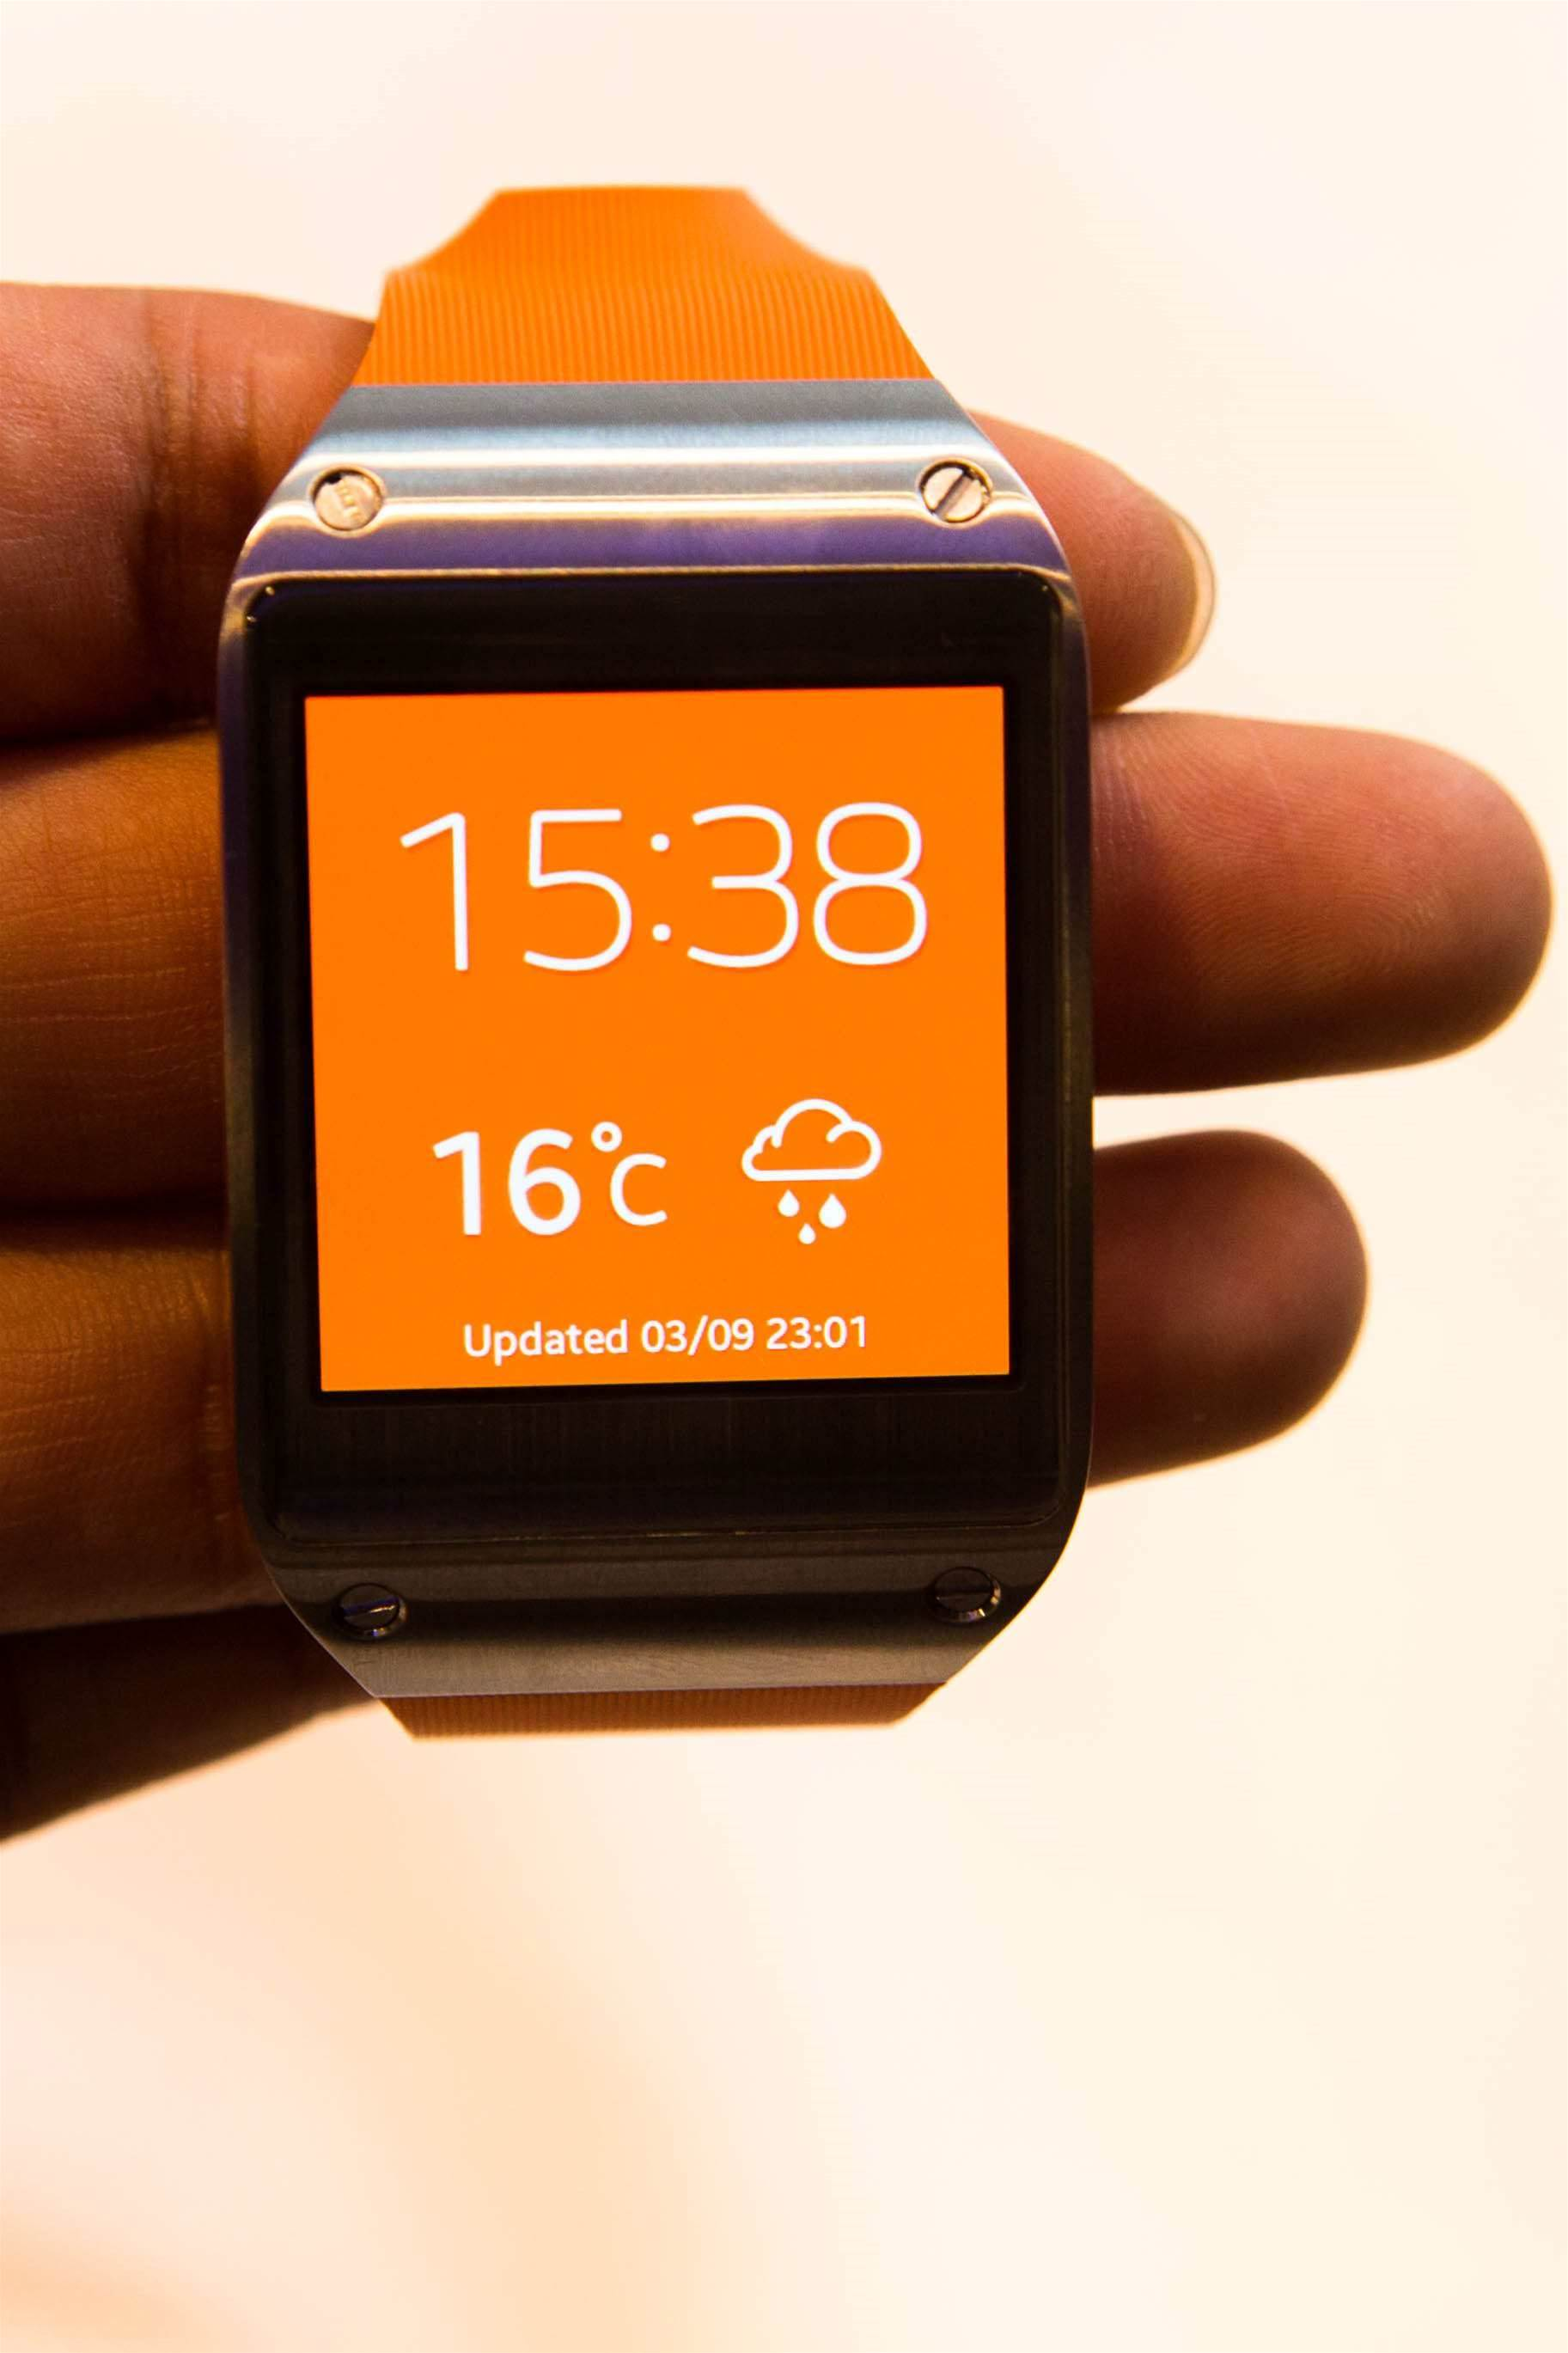 "The Galaxy Gear's touchscreen measures 1.63"" diagonally and has a resolution of 320 x 320 pixels. Like Samsung's top-of-the-range smartphones, it uses the Super AMOLED display technology. The homescreen consists of an interchangeable clock face; 10 different clock faces are included, and you can also create your own."